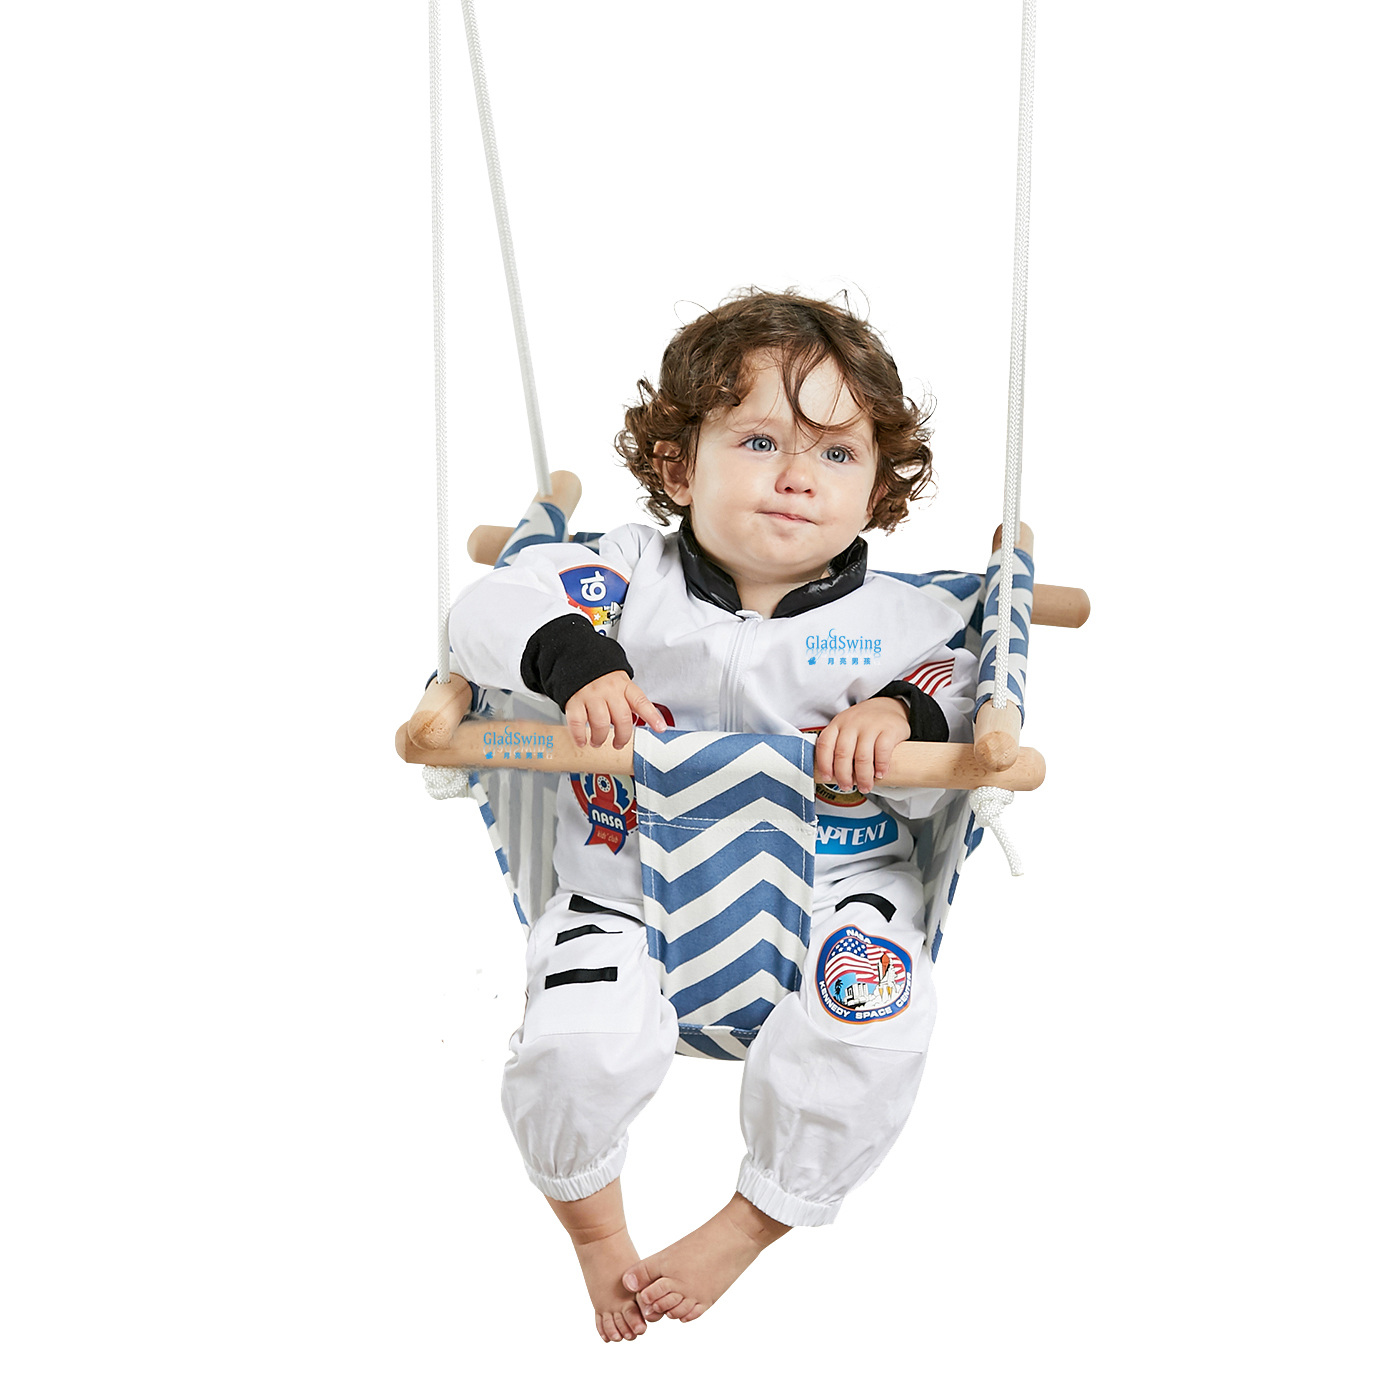 GladSwing Baby And Child Sling Swing Indoor Home Outdoor